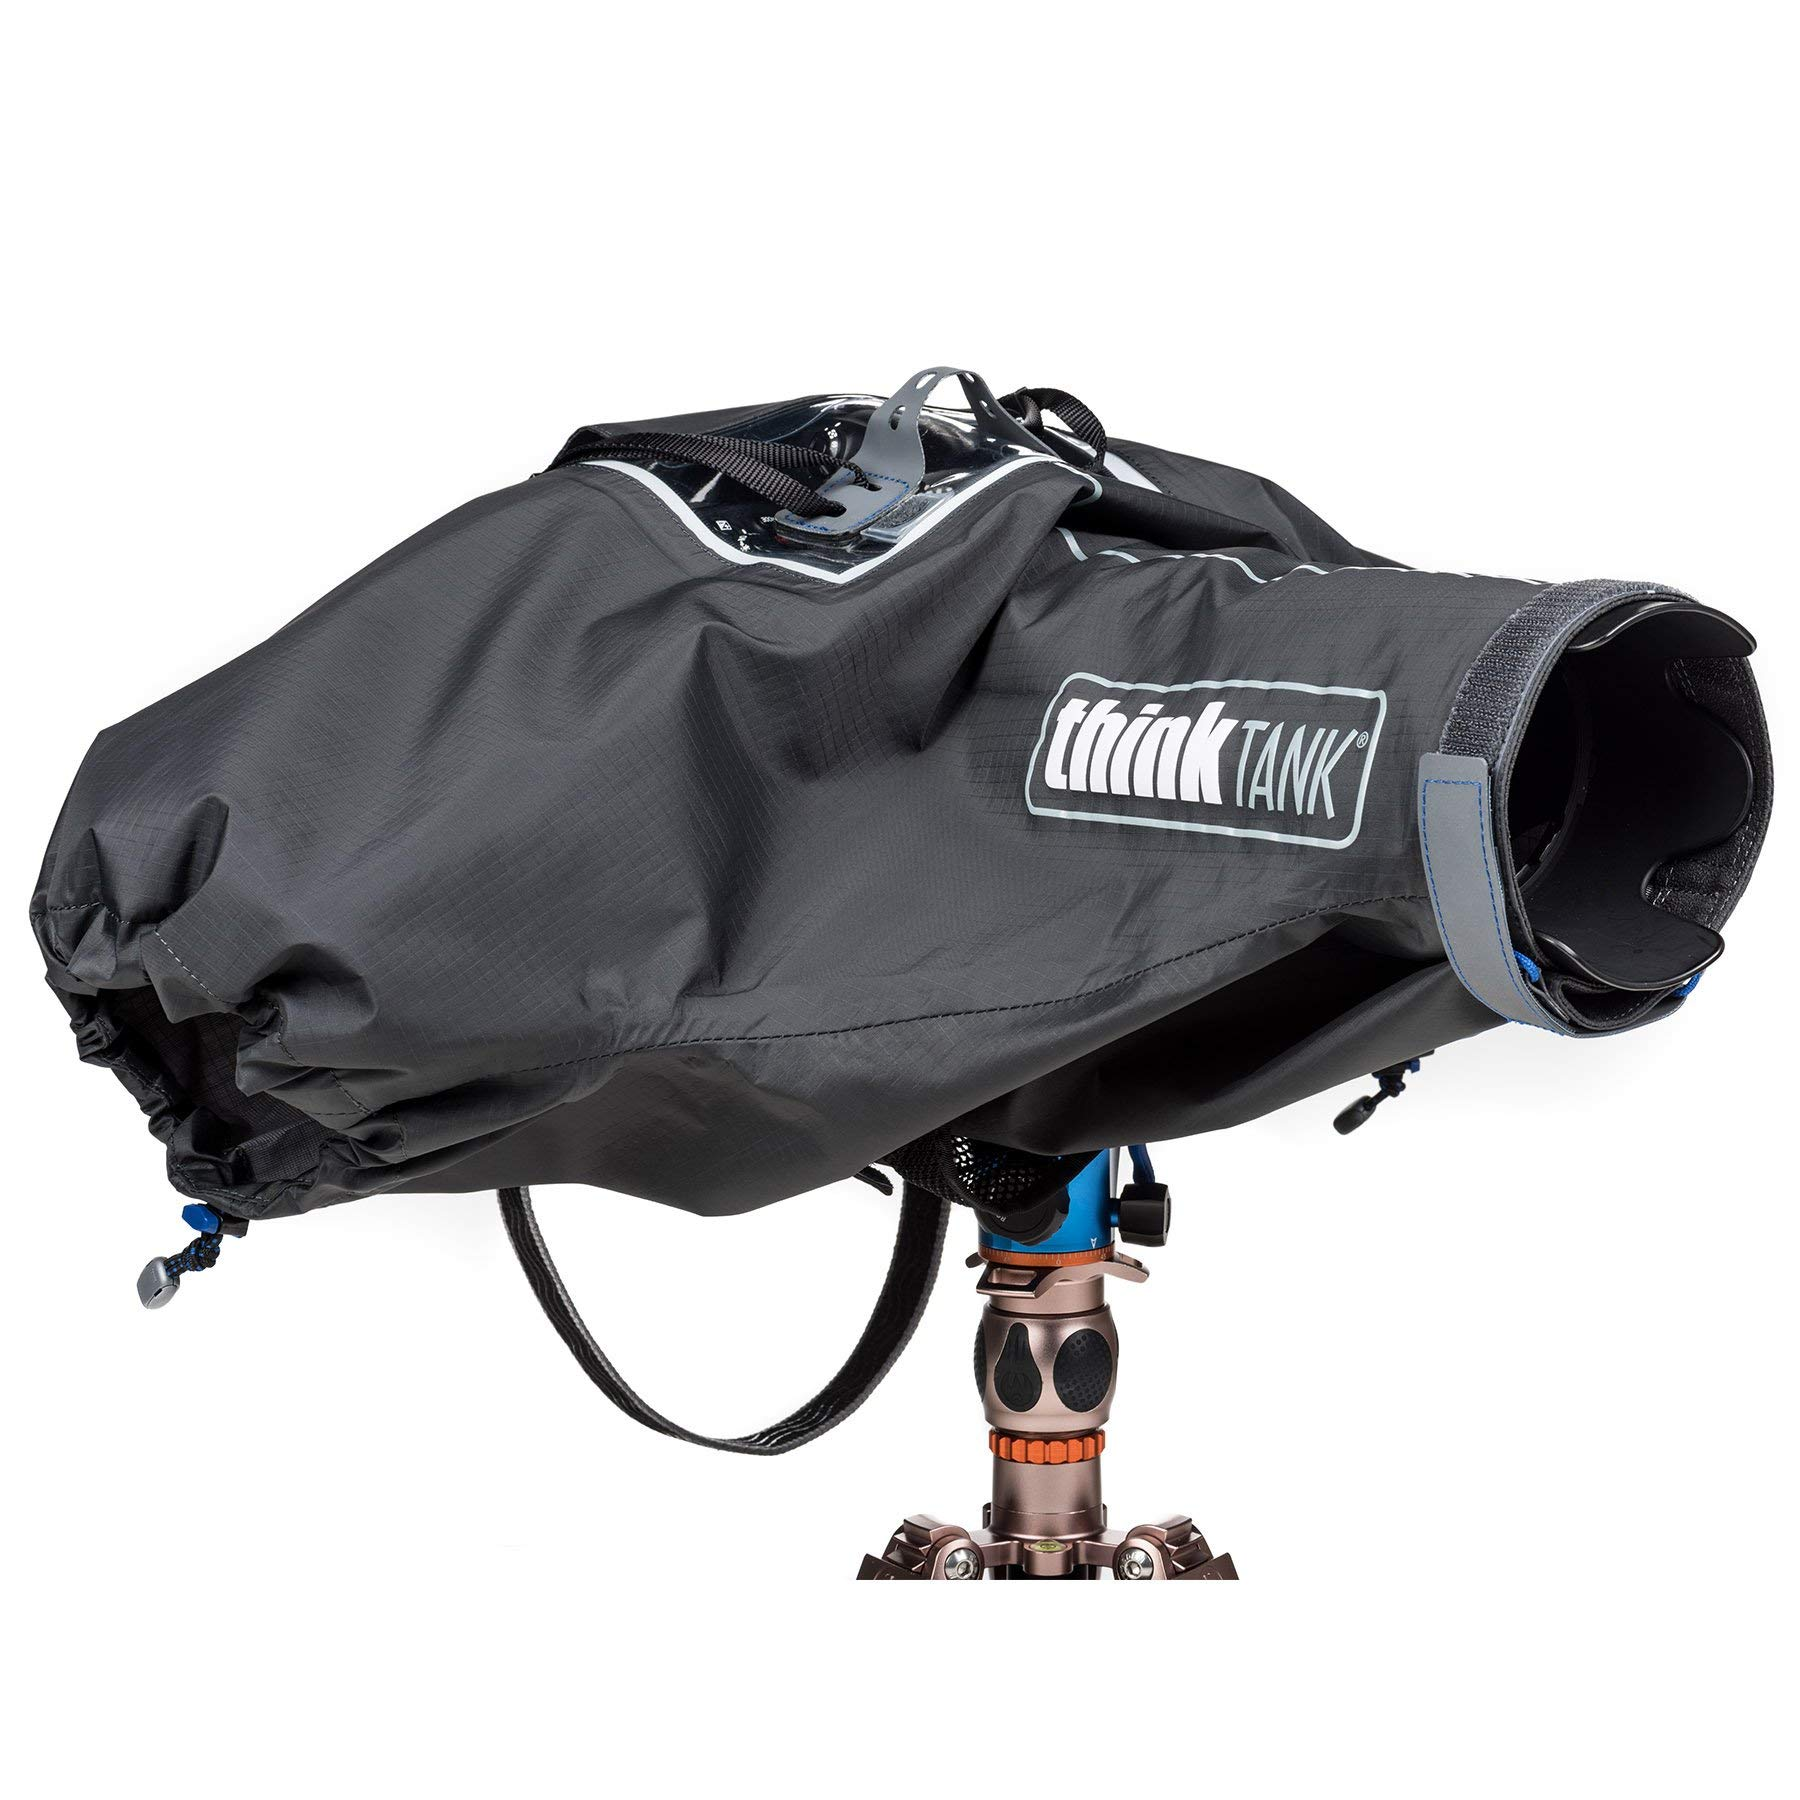 Think Tank Photo Hydrophobia D 70-200 V3 Camera Rain Cover for DSLR Camera with 70-200mm f/2.8 Lens